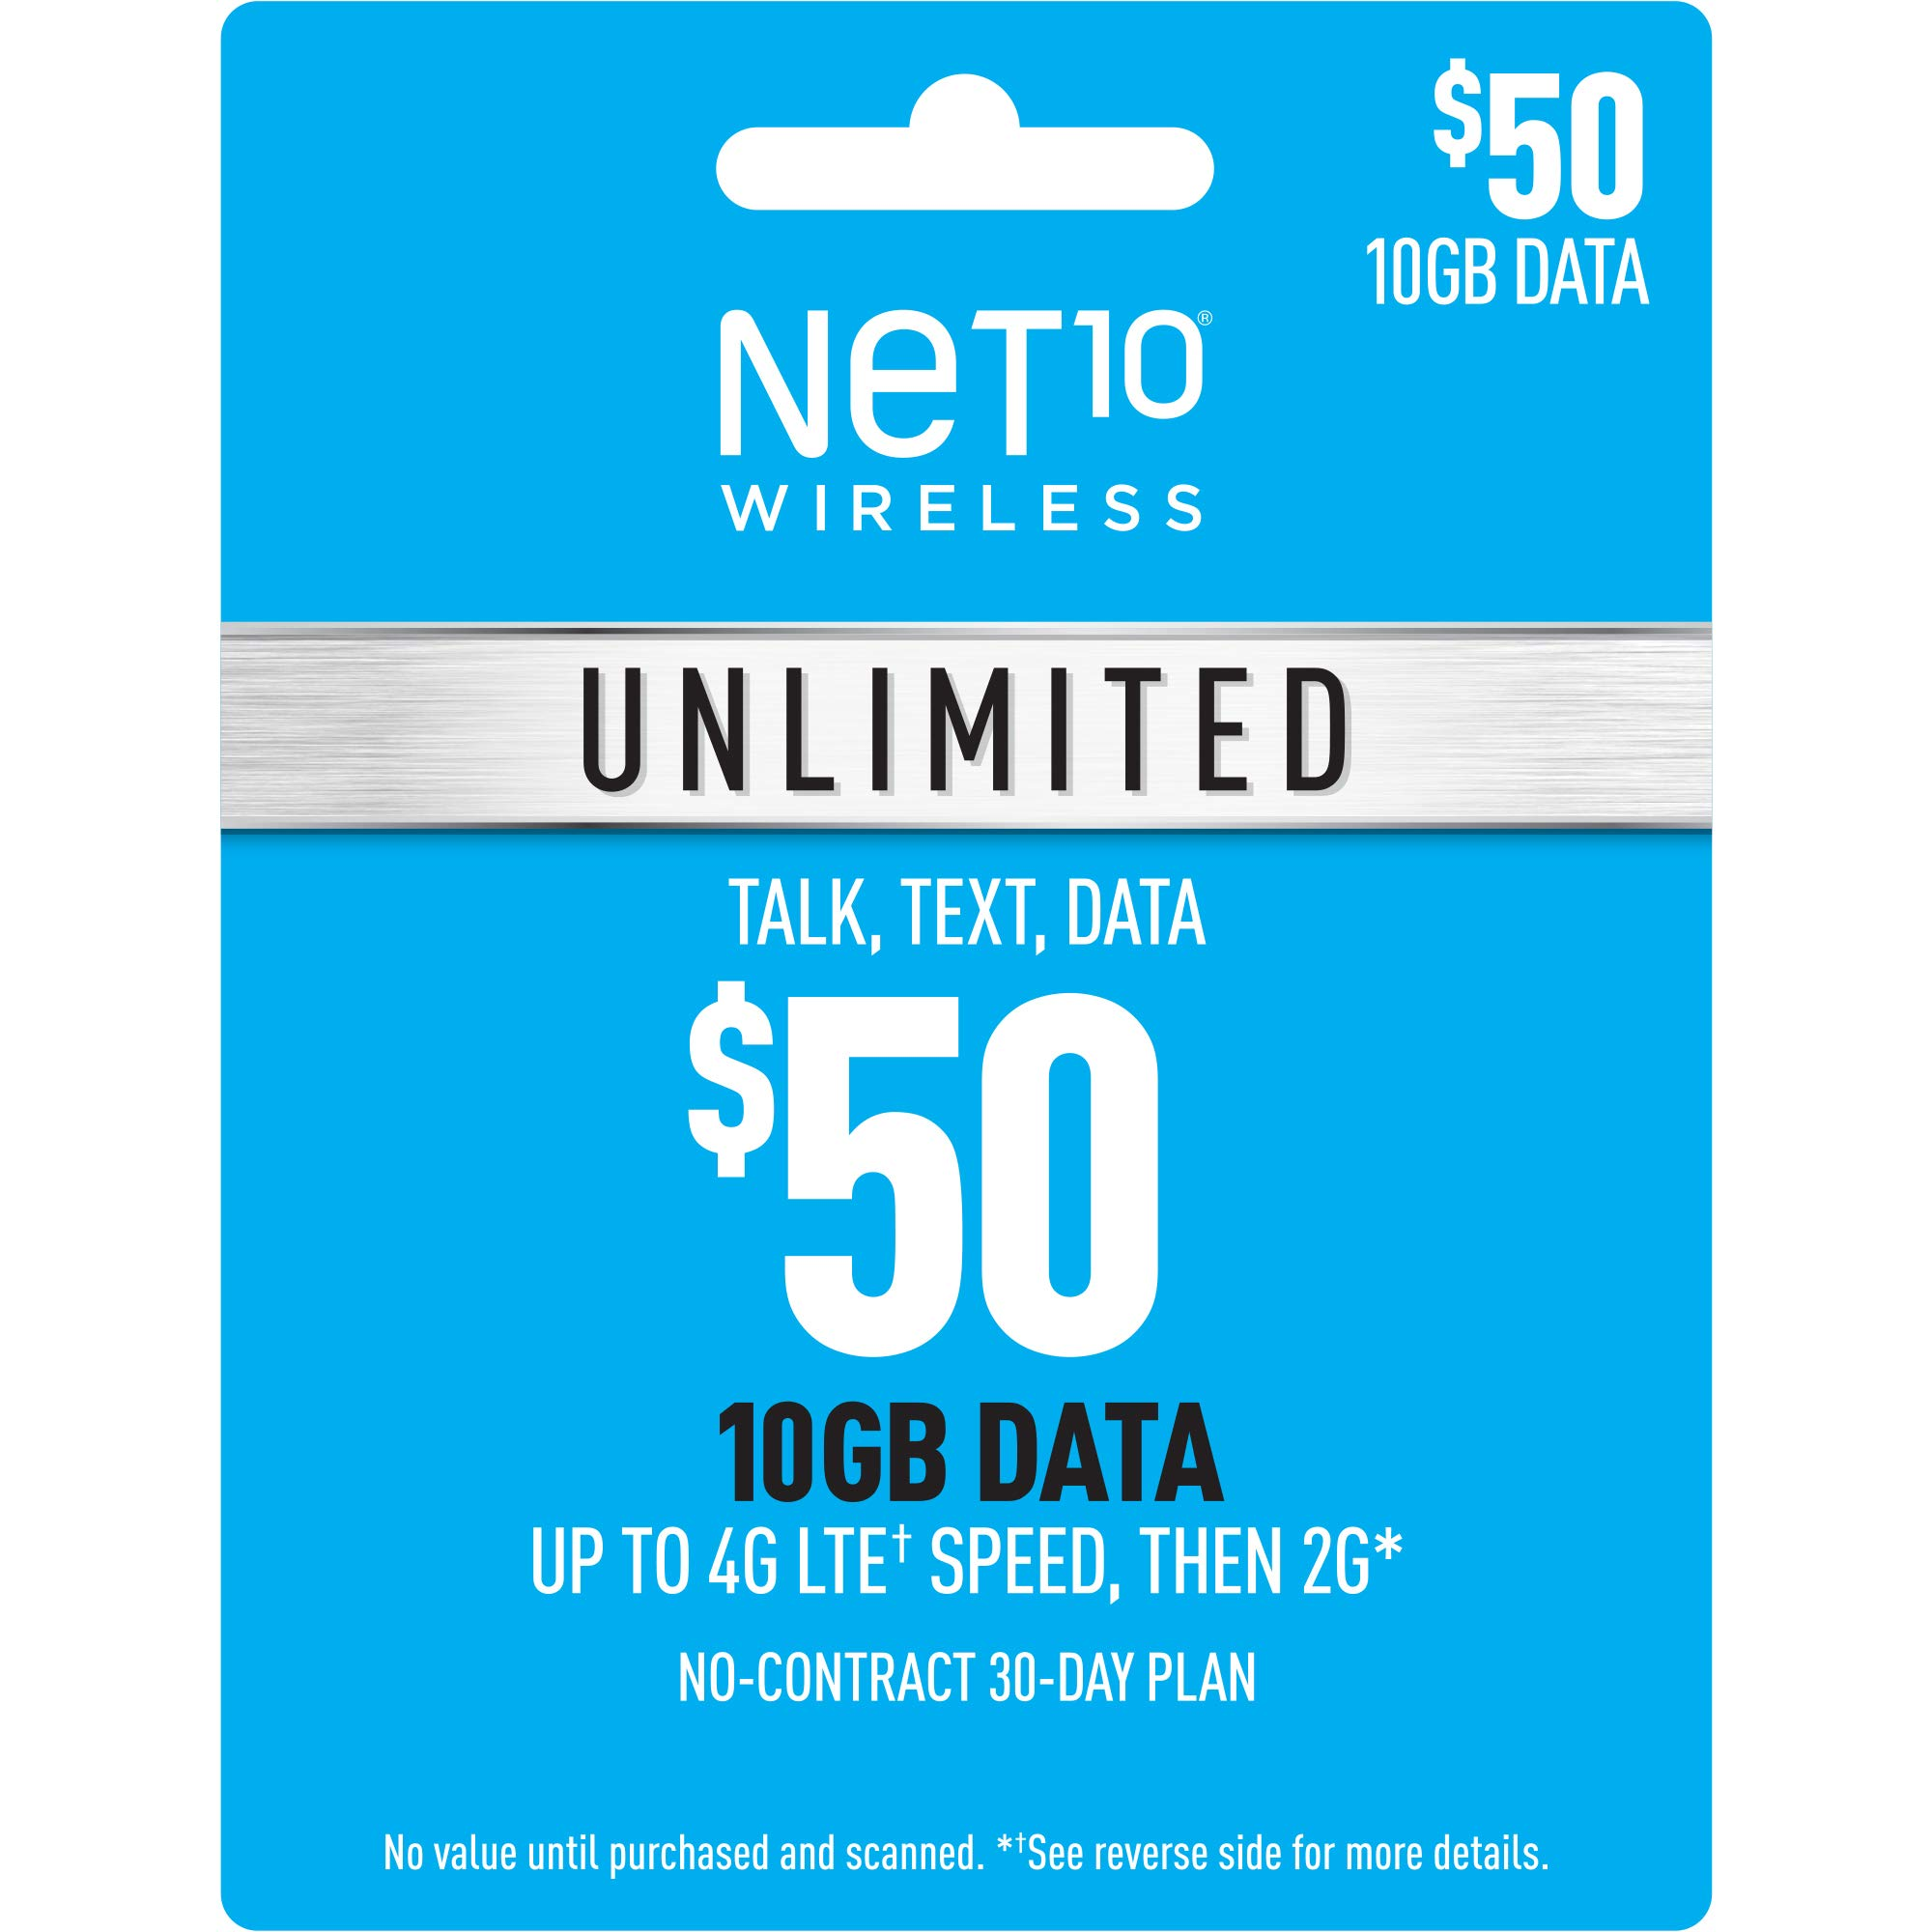 Net10 Wirelss $50 Unlimited 10GB Plan Refill Card (Mail Delivery) by Unknown